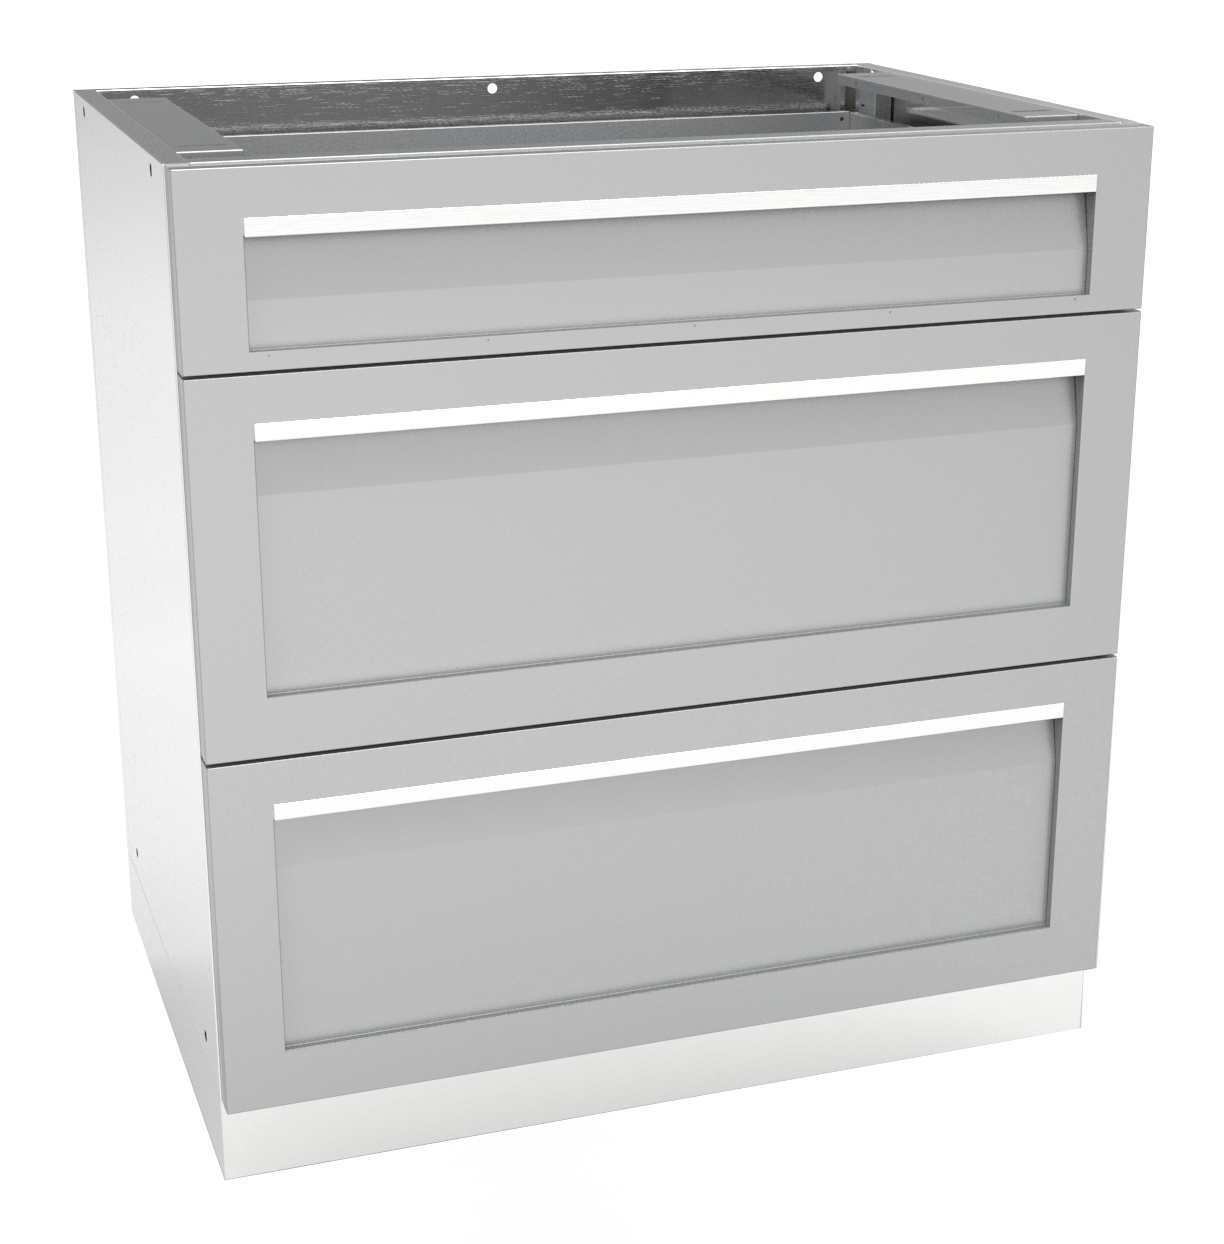 3 drawer outdoor kitchen cabinet g40003 4 life outdoor for Kitchen cabinets and drawers